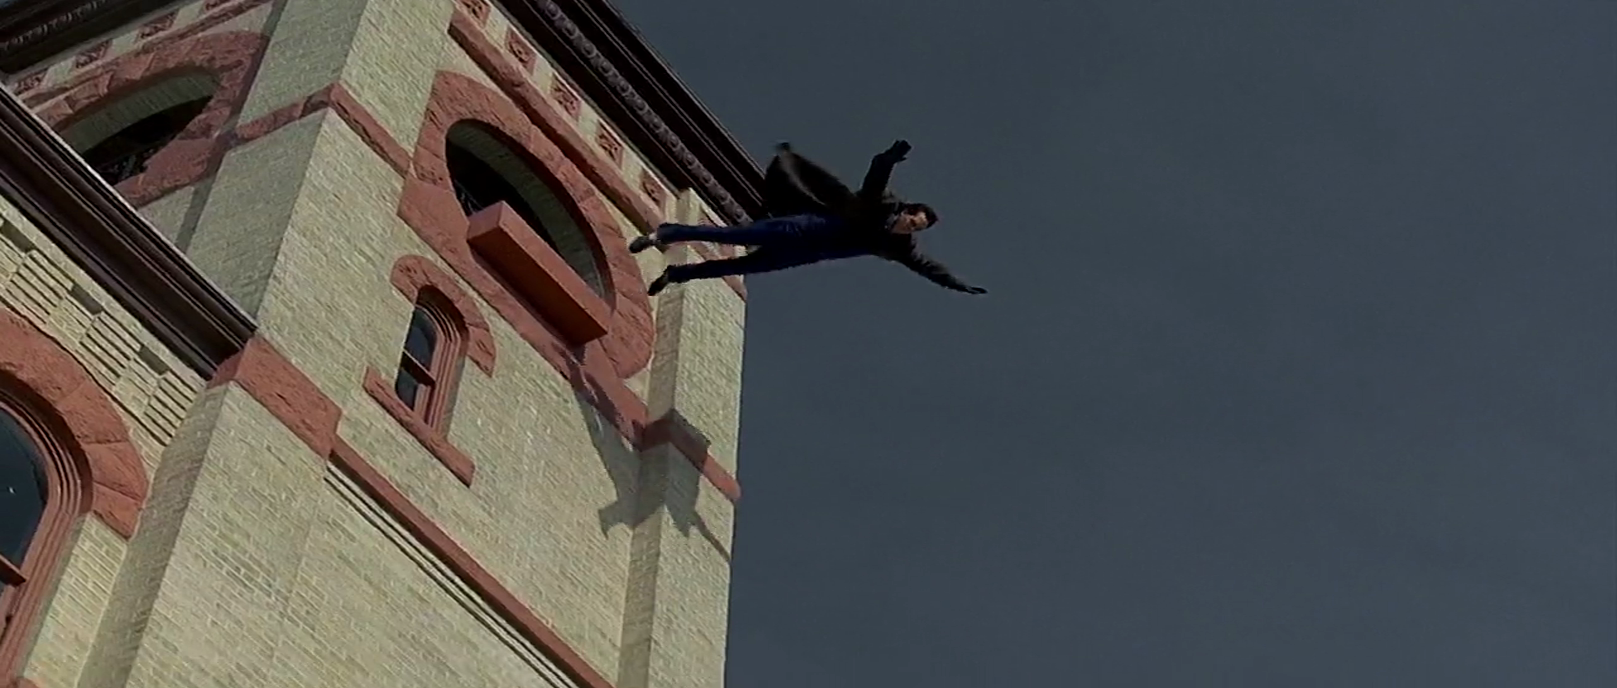 Phil jumps from a building in one of his many suicides.